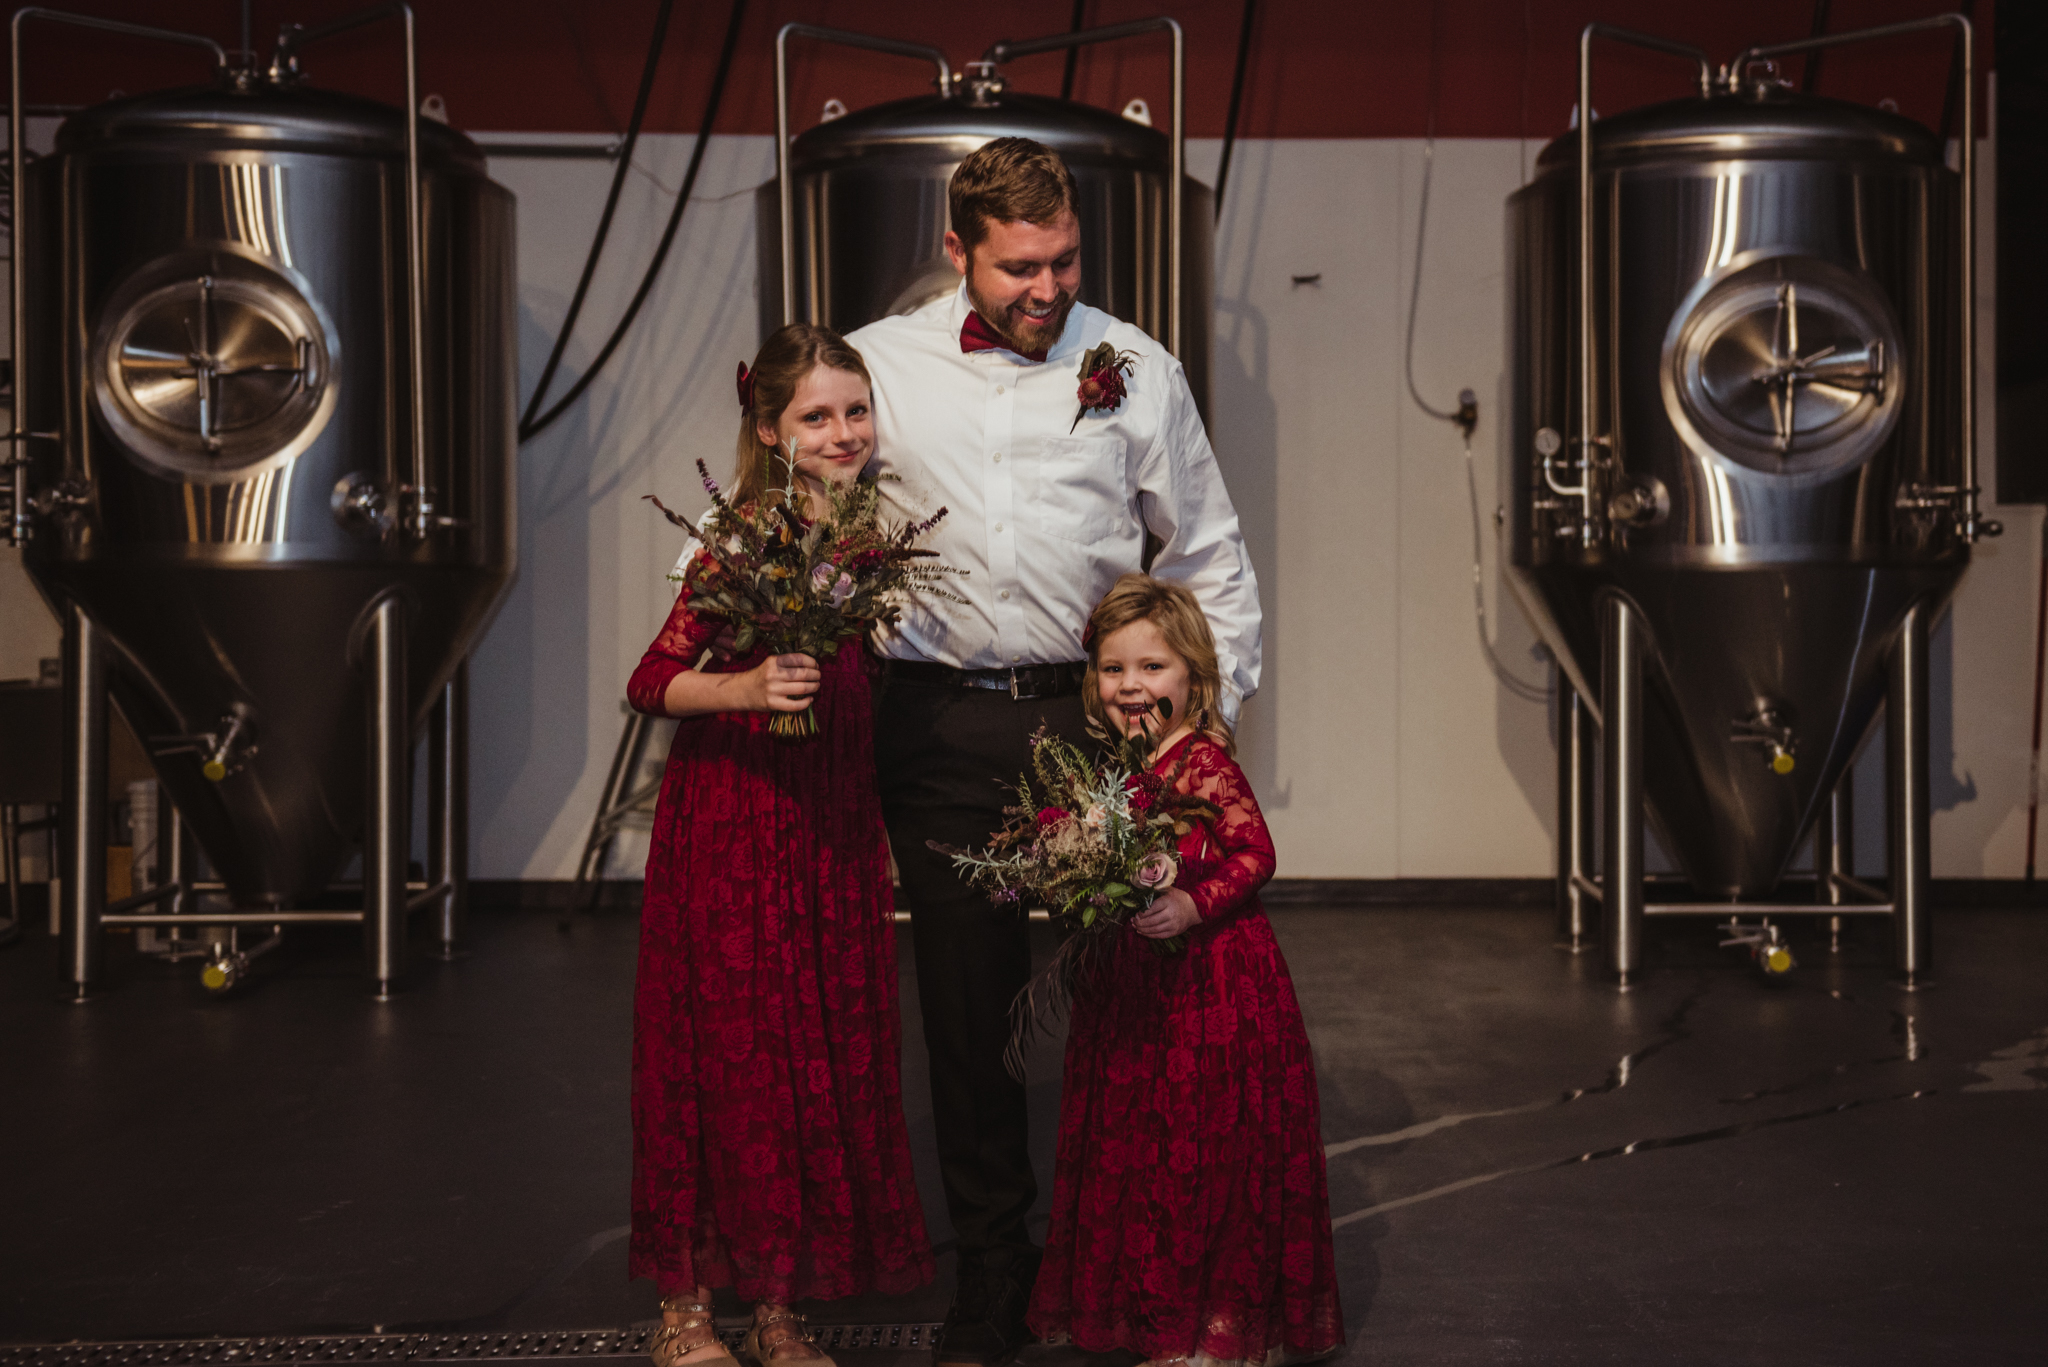 the-groom-with-his-daughters-pose-for-a-picture-with-the-vats-of-beer-behind-them.jpg